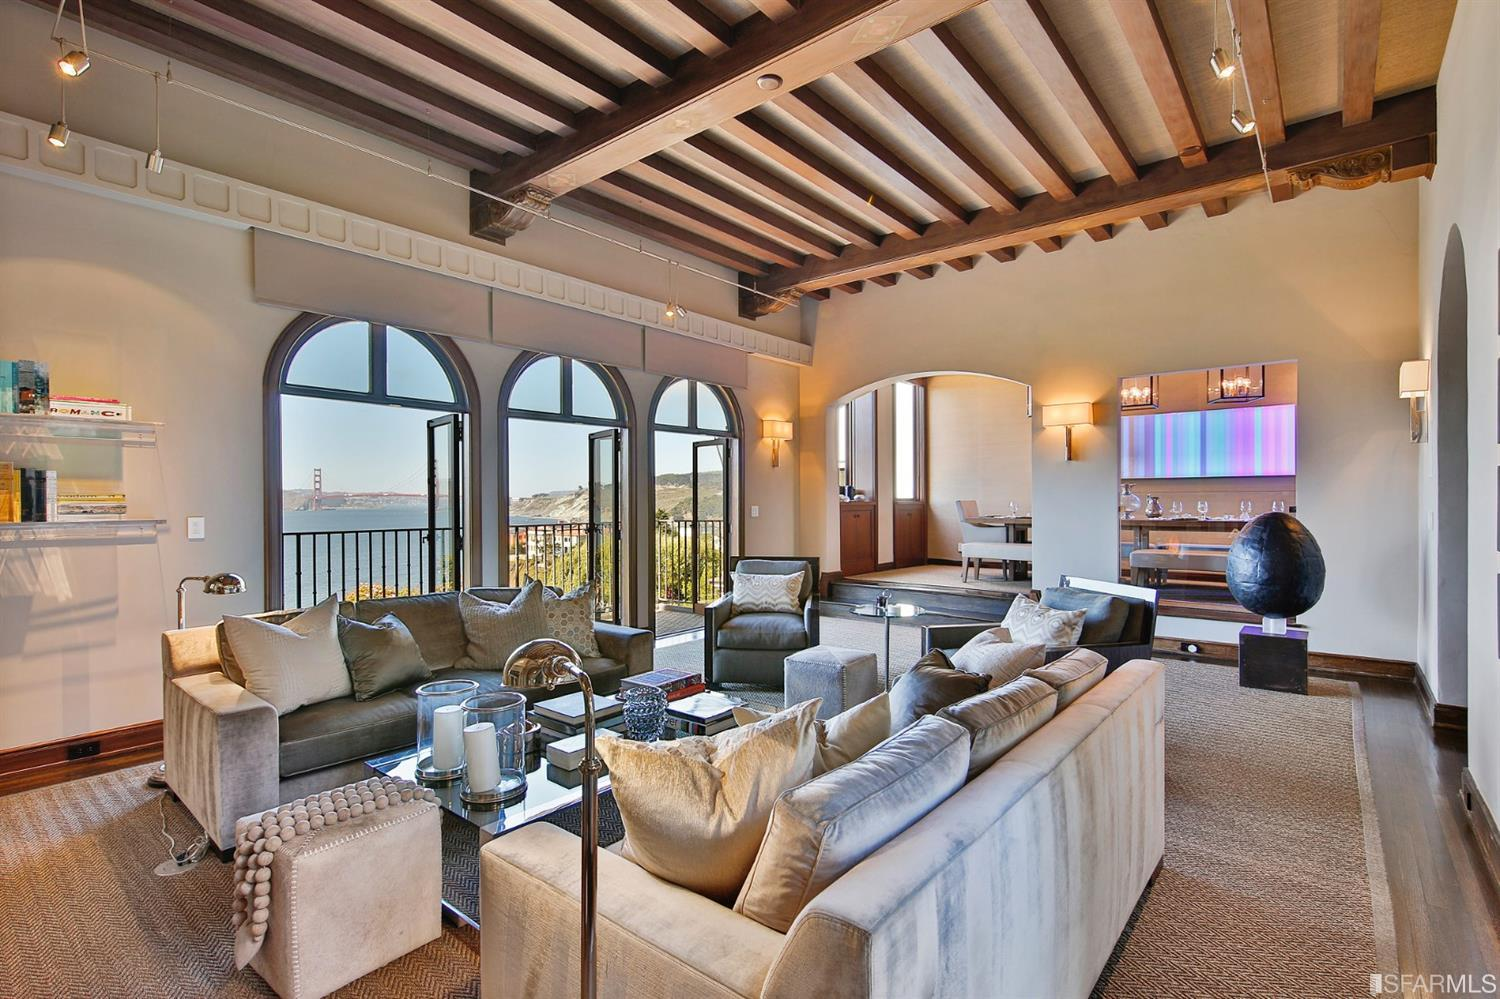 Grand formal living room - gracious in size with a modern aesthetic showcasing breathtaking views, high ceilings & architect